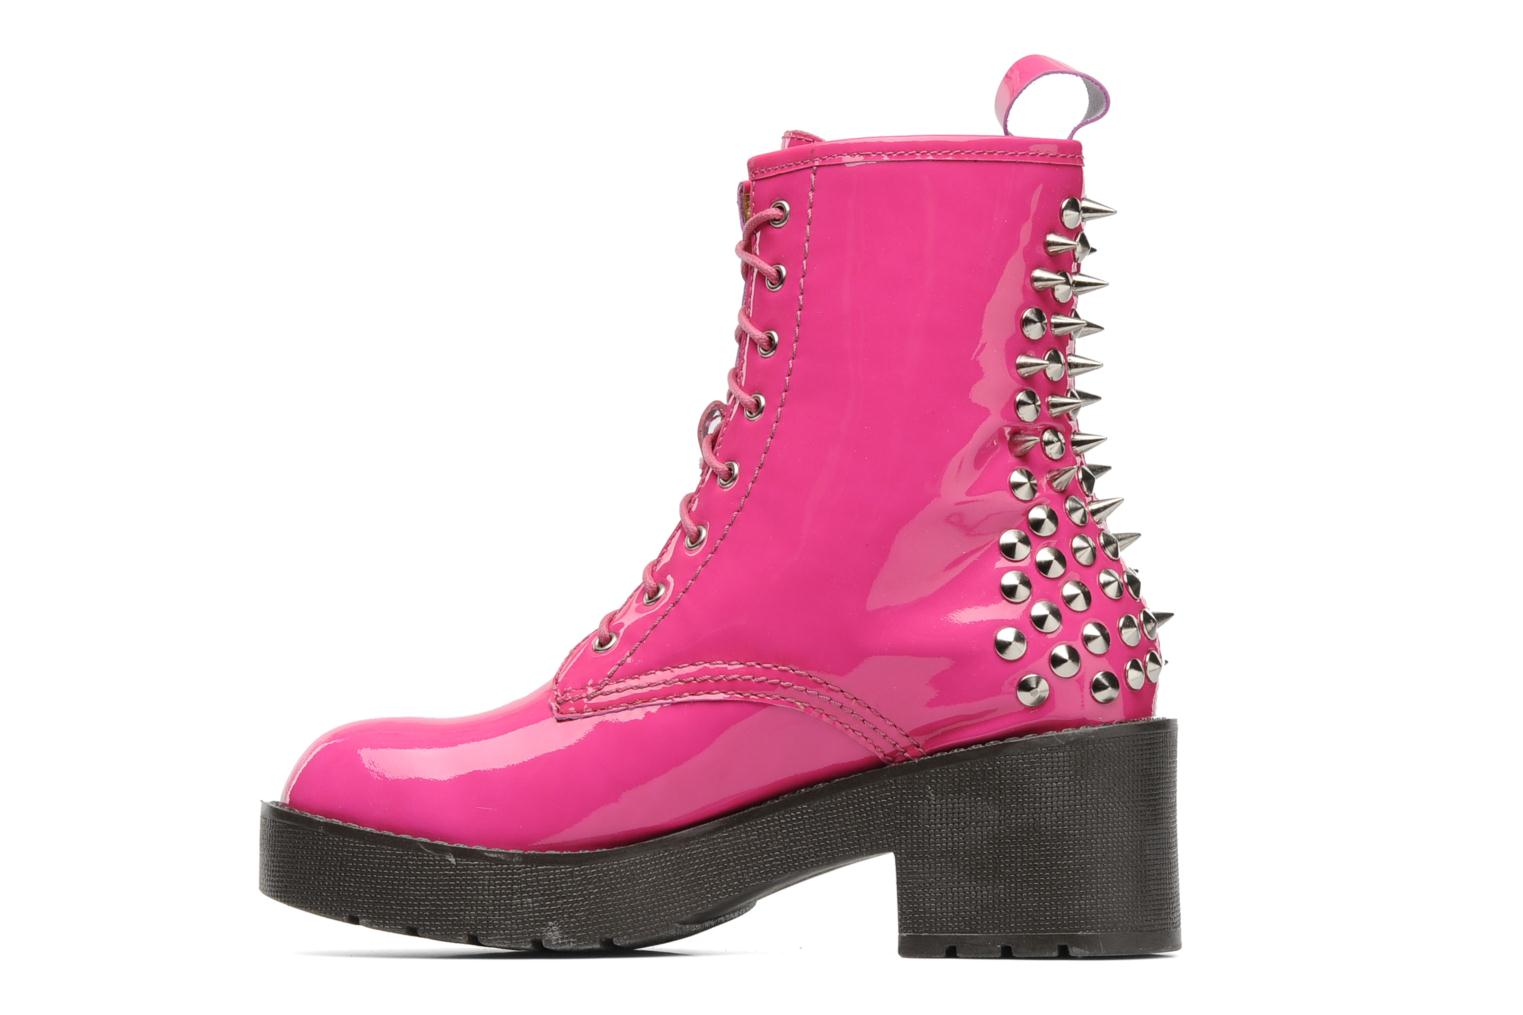 Jeffrey Campbell 8th Street Ankle Boots In Pink At Sarenza